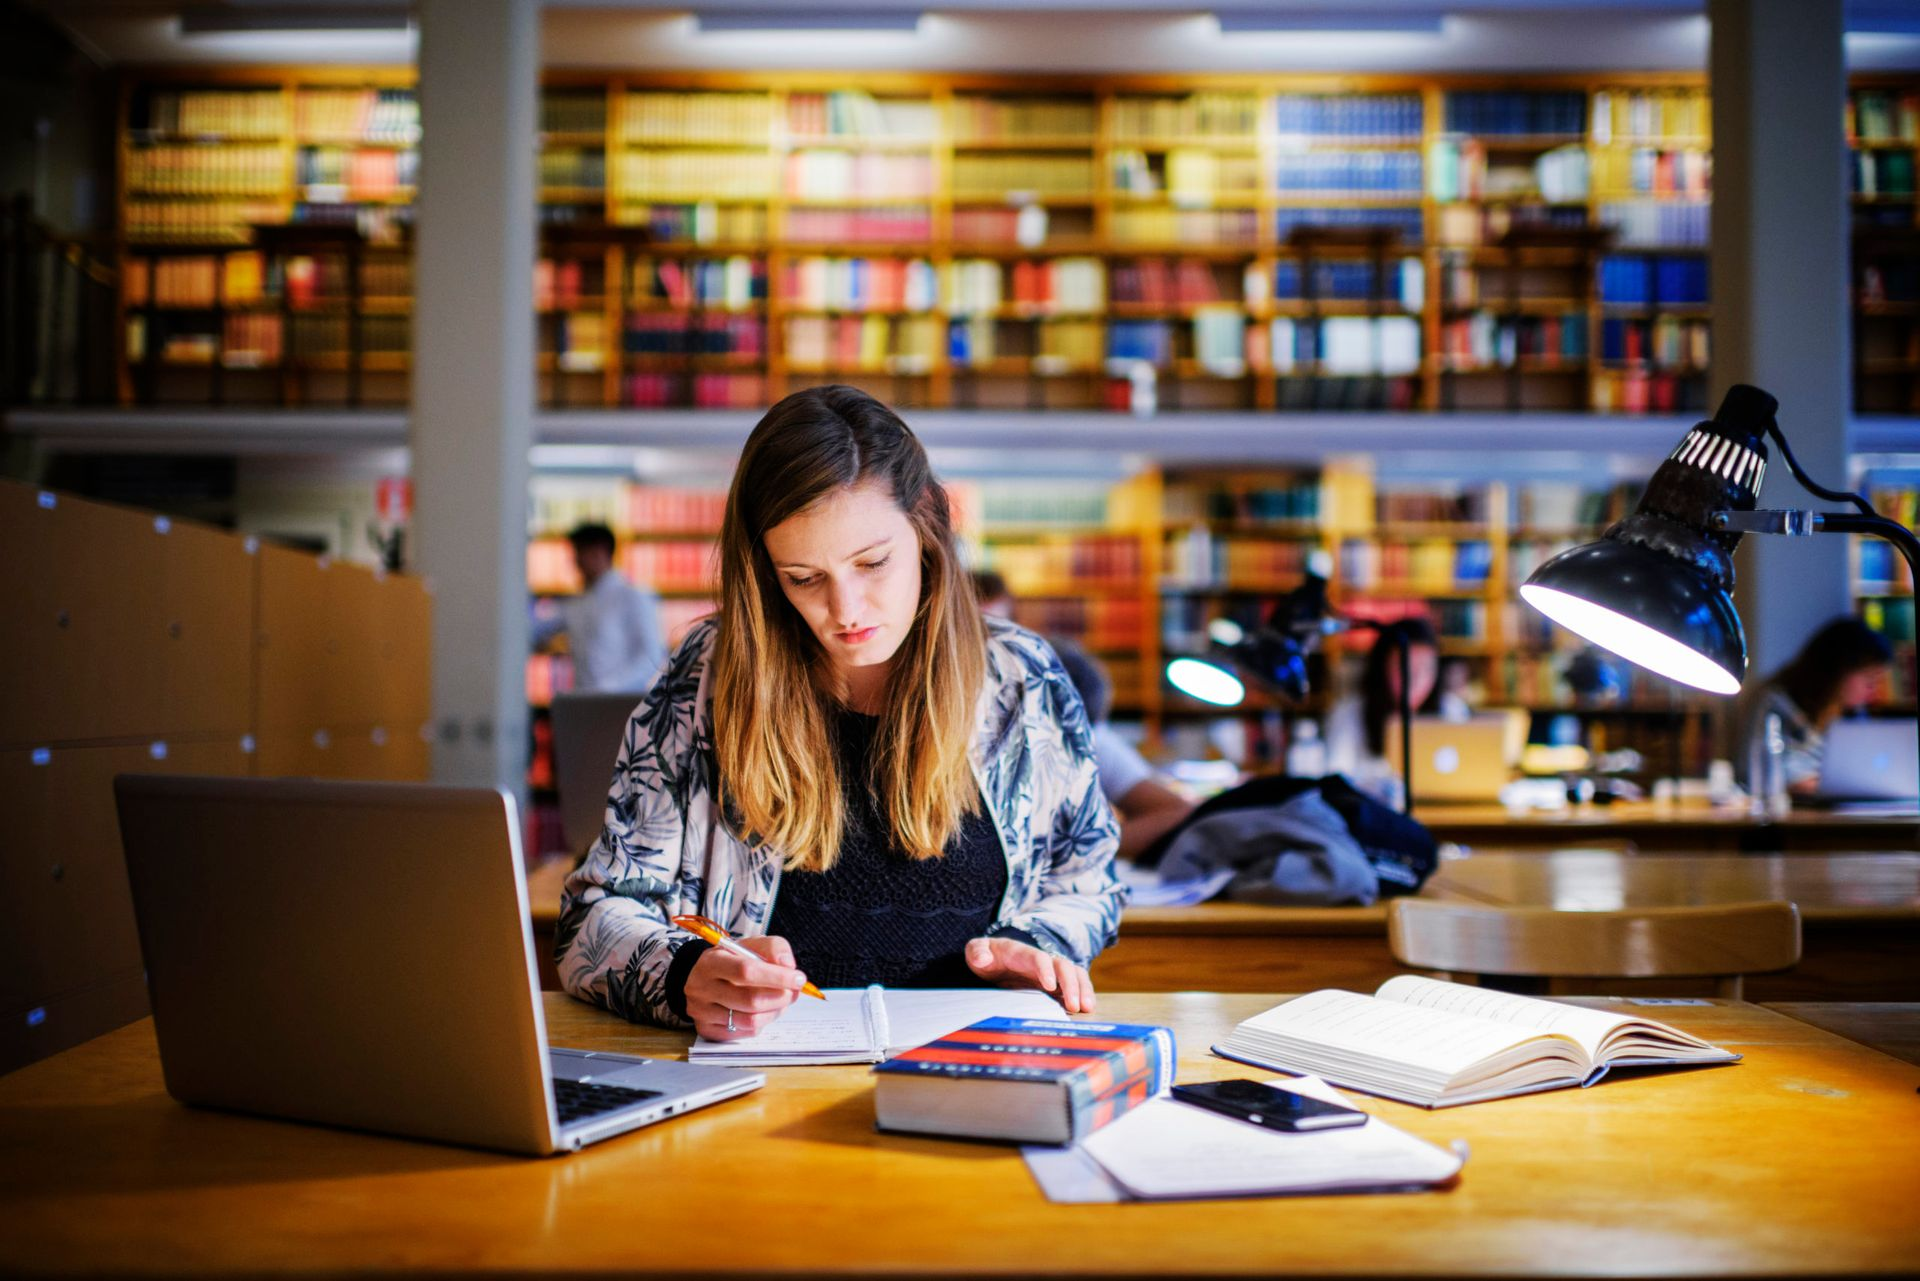 Person studying in a university library.